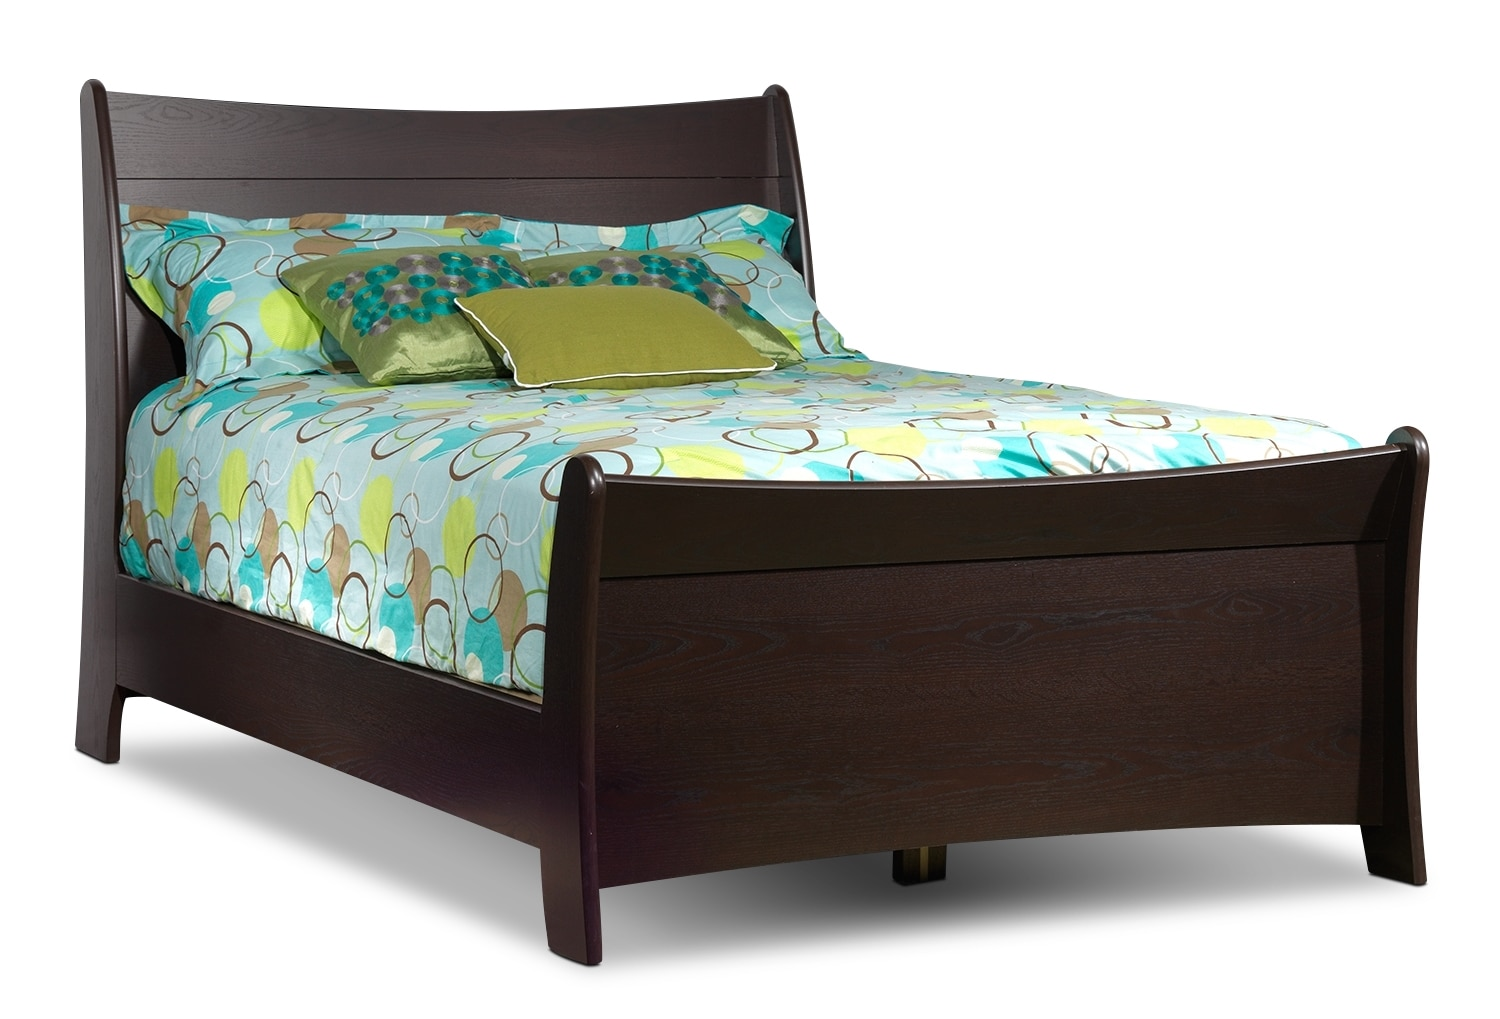 Rachel Full Sleigh Bed - Chocolate